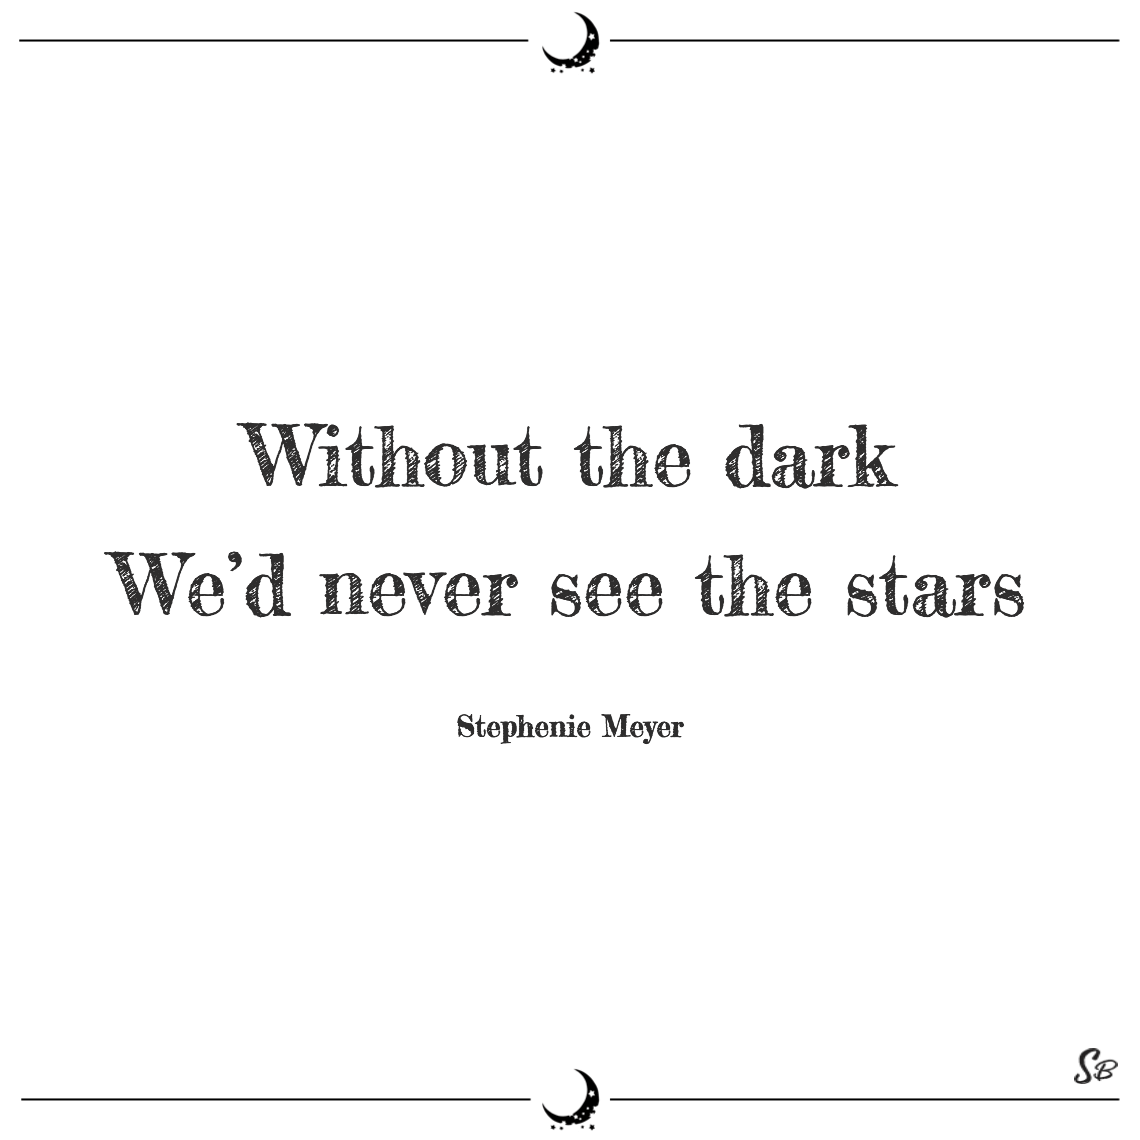 Without the dark we'd never see the stars stephenie meyer